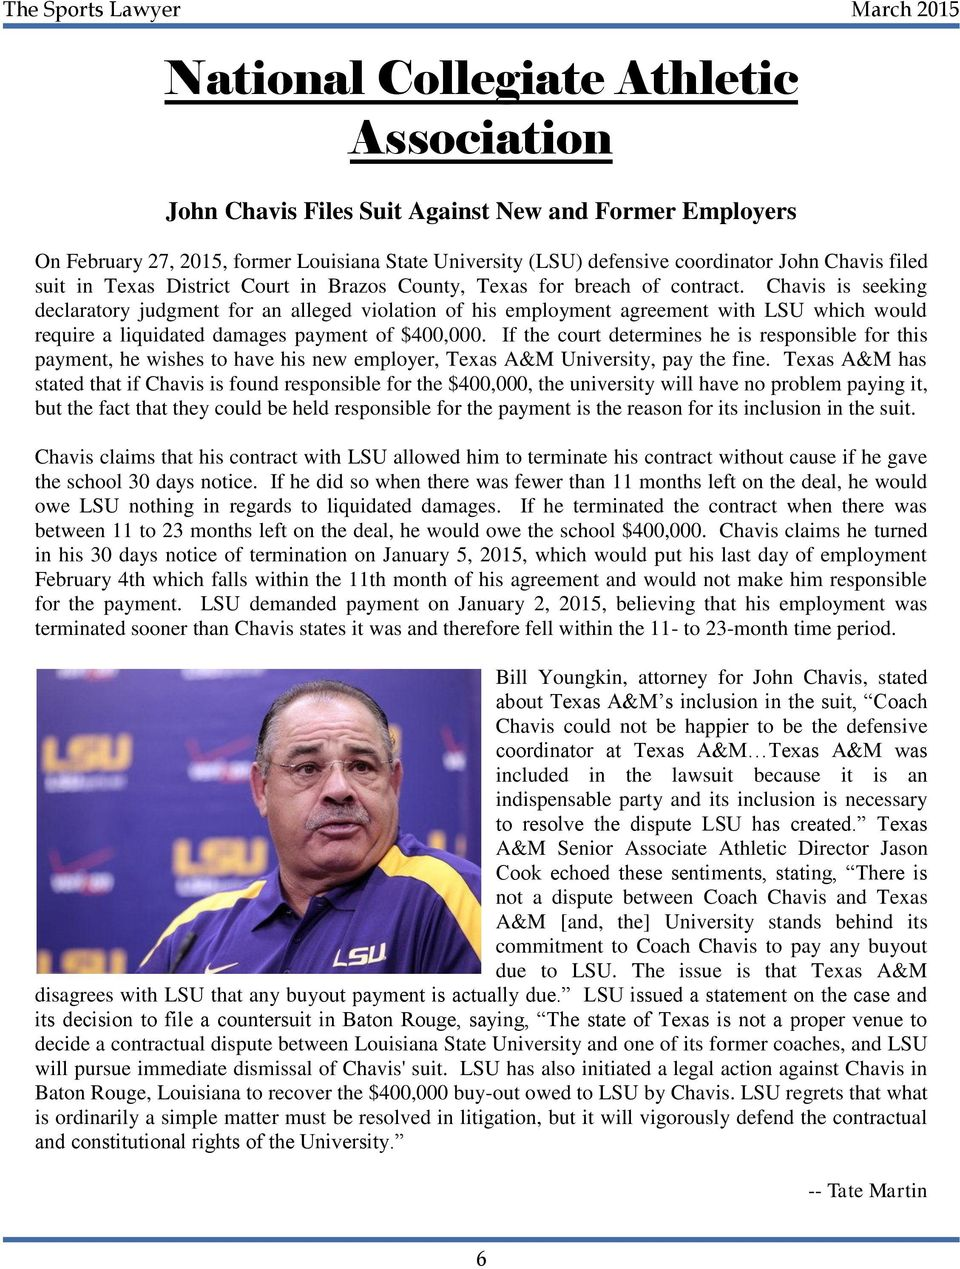 Chavis is seeking declaratory judgment for an alleged violation of his employment agreement with LSU which would require a liquidated damages payment of $400,000.